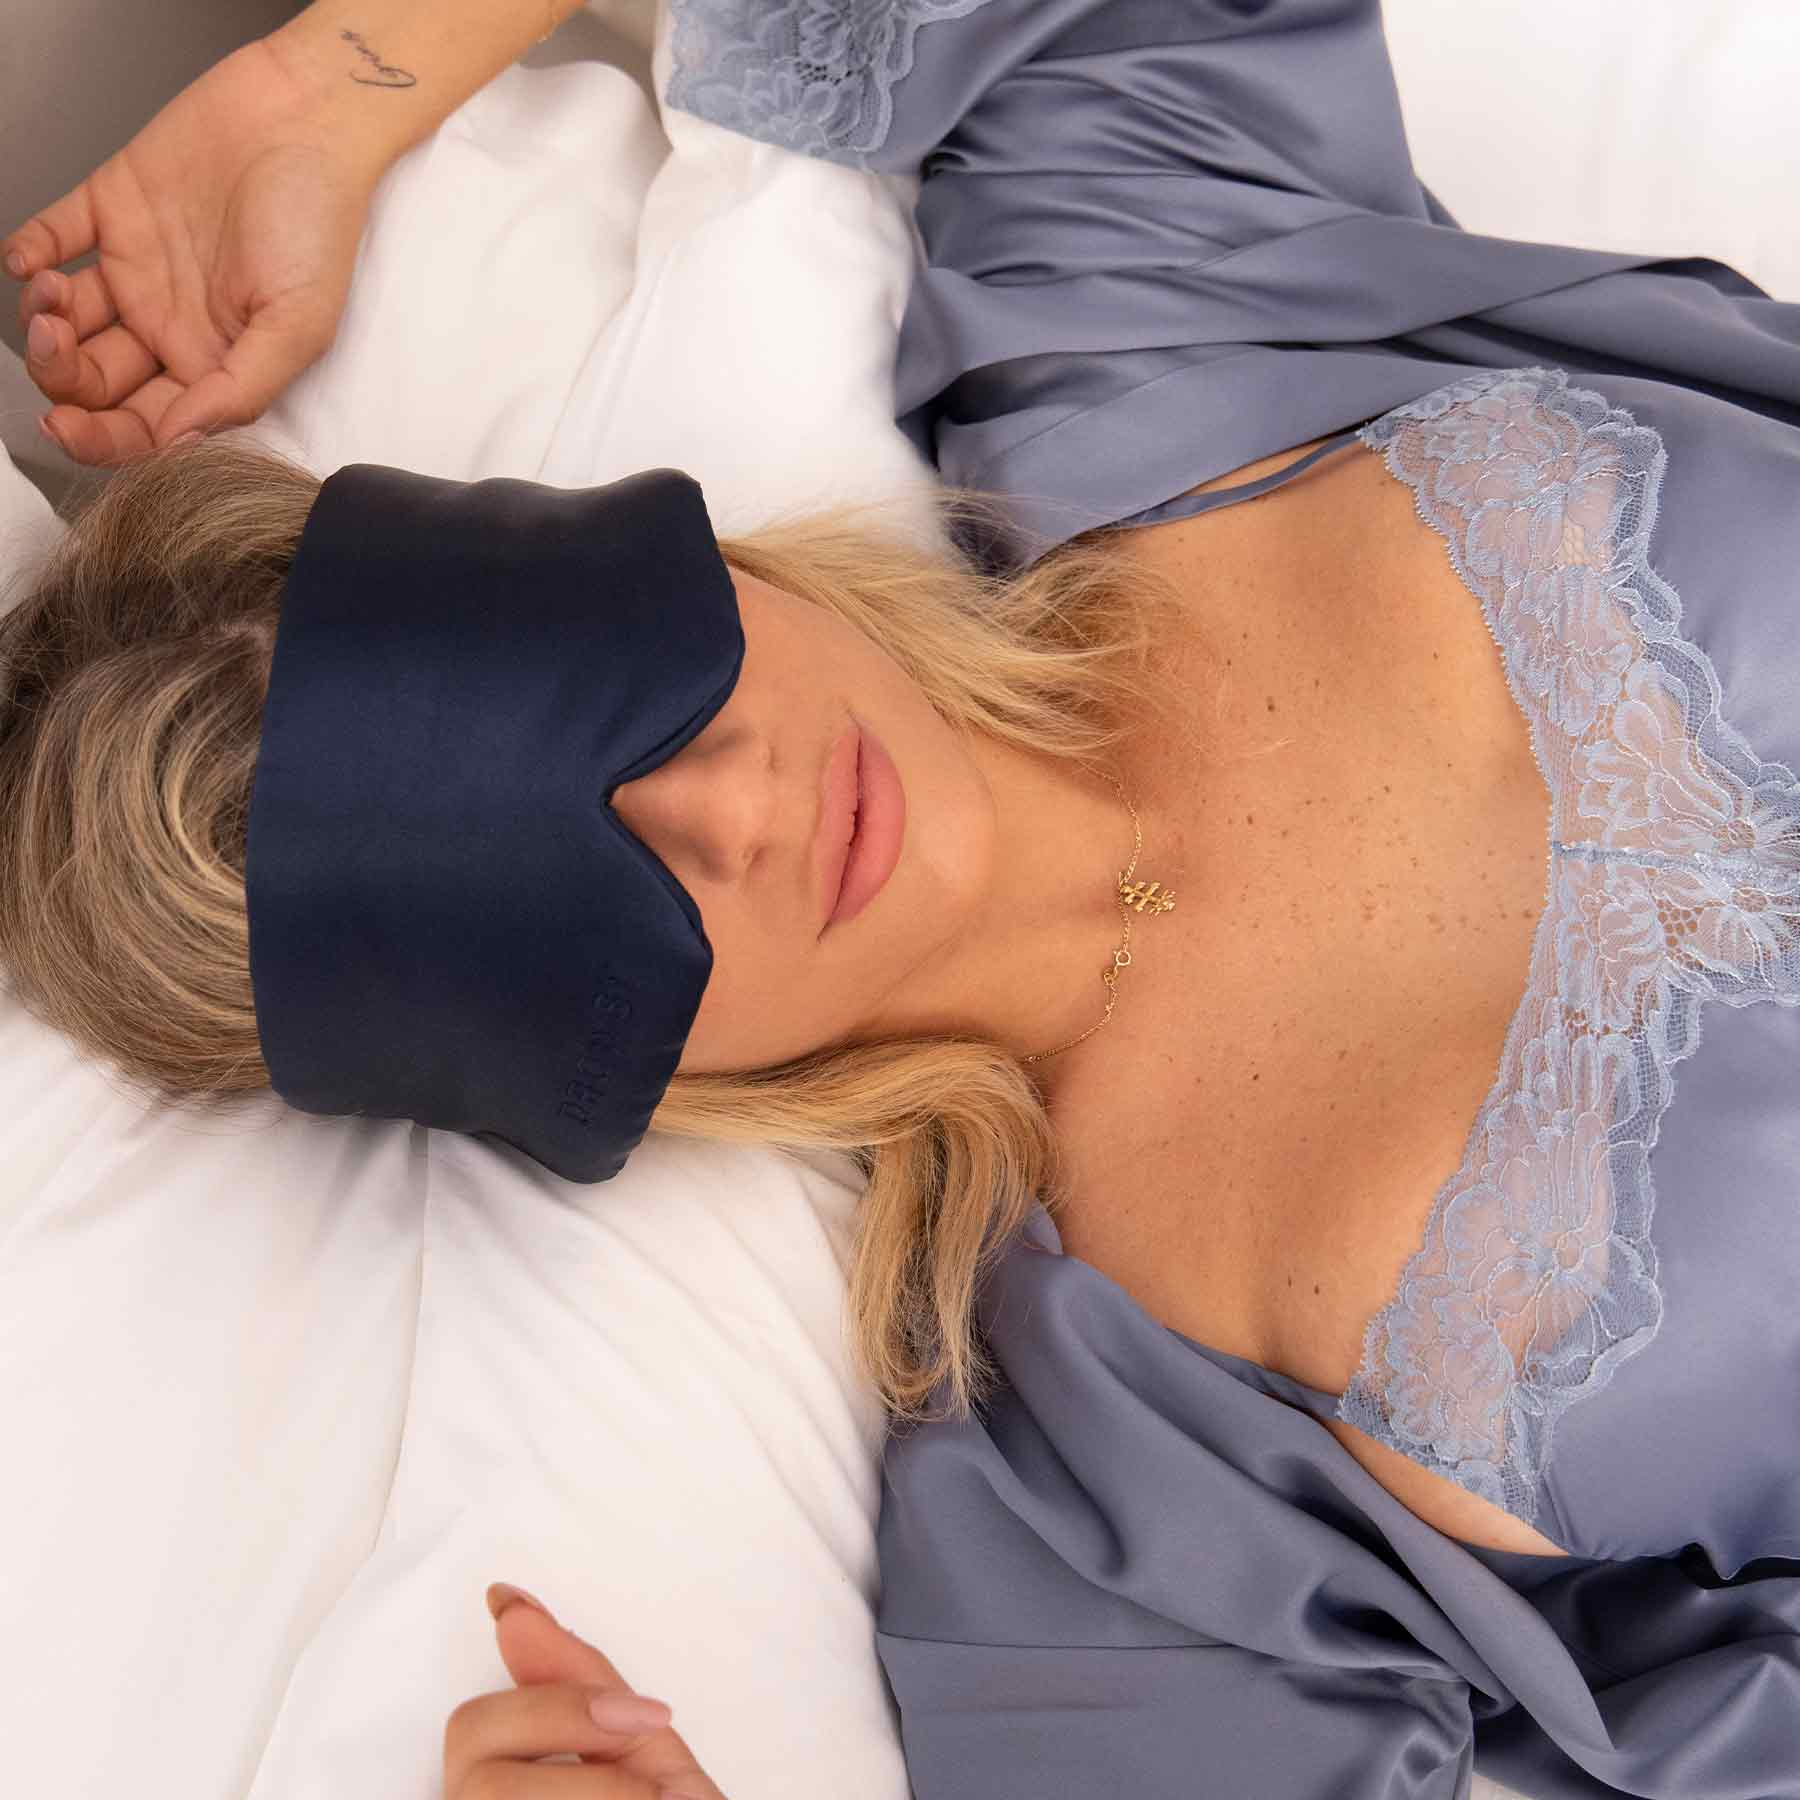 Model sleeping in bed with Drowsy Sleep Co. Midnight Blue mask covering her eyes